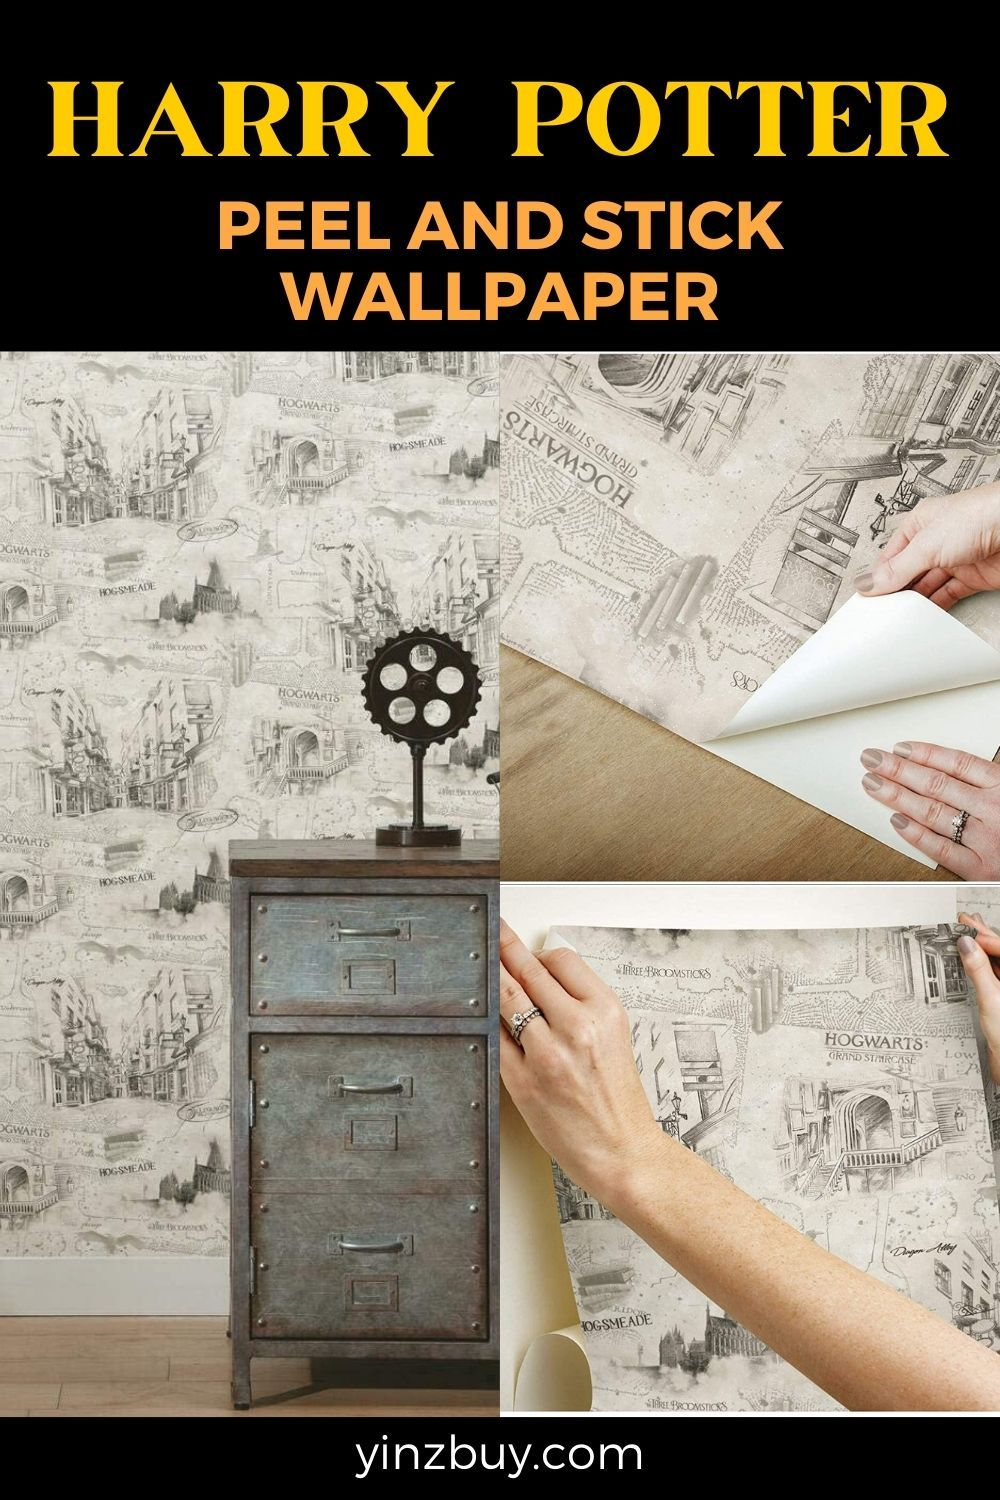 Roommates Peel And Stick Wallpaper Removable Harry Potter Decor Yinzbuy Peel And Stick Wallpaper Harry Potter Decor Temporary Wallpaper